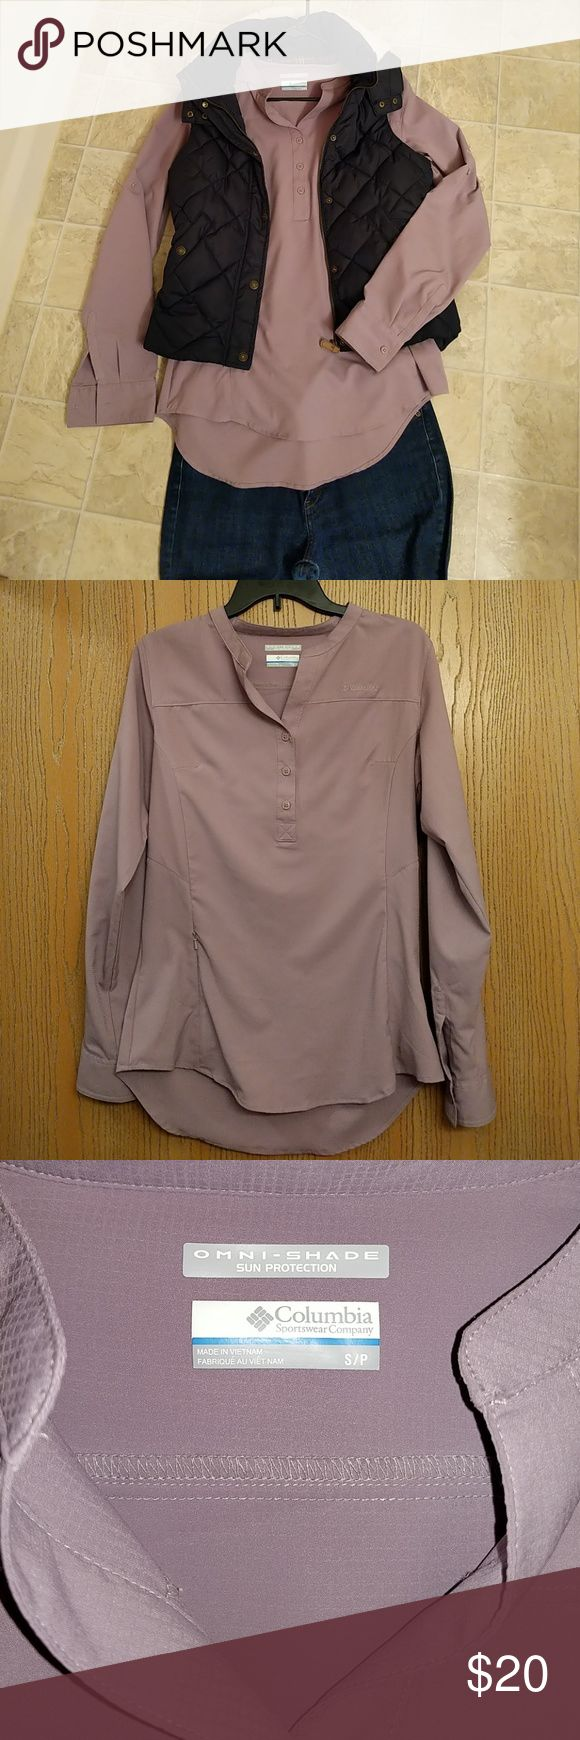 ☀️EEUC Columbia Omni-shade lavender tunic shirt ☀️EEUC Columbia Omni-shade tunic shirt in lavender. Embroidered logo on front and sleeve. Buttons on sleeves to roll up to make 3/4 length sleeves. Zipper pocket on right side. Only worn a few times. No snags or stains.  Offers welcome, hit the Offer button below. Columbia Tops Button Down Shirts